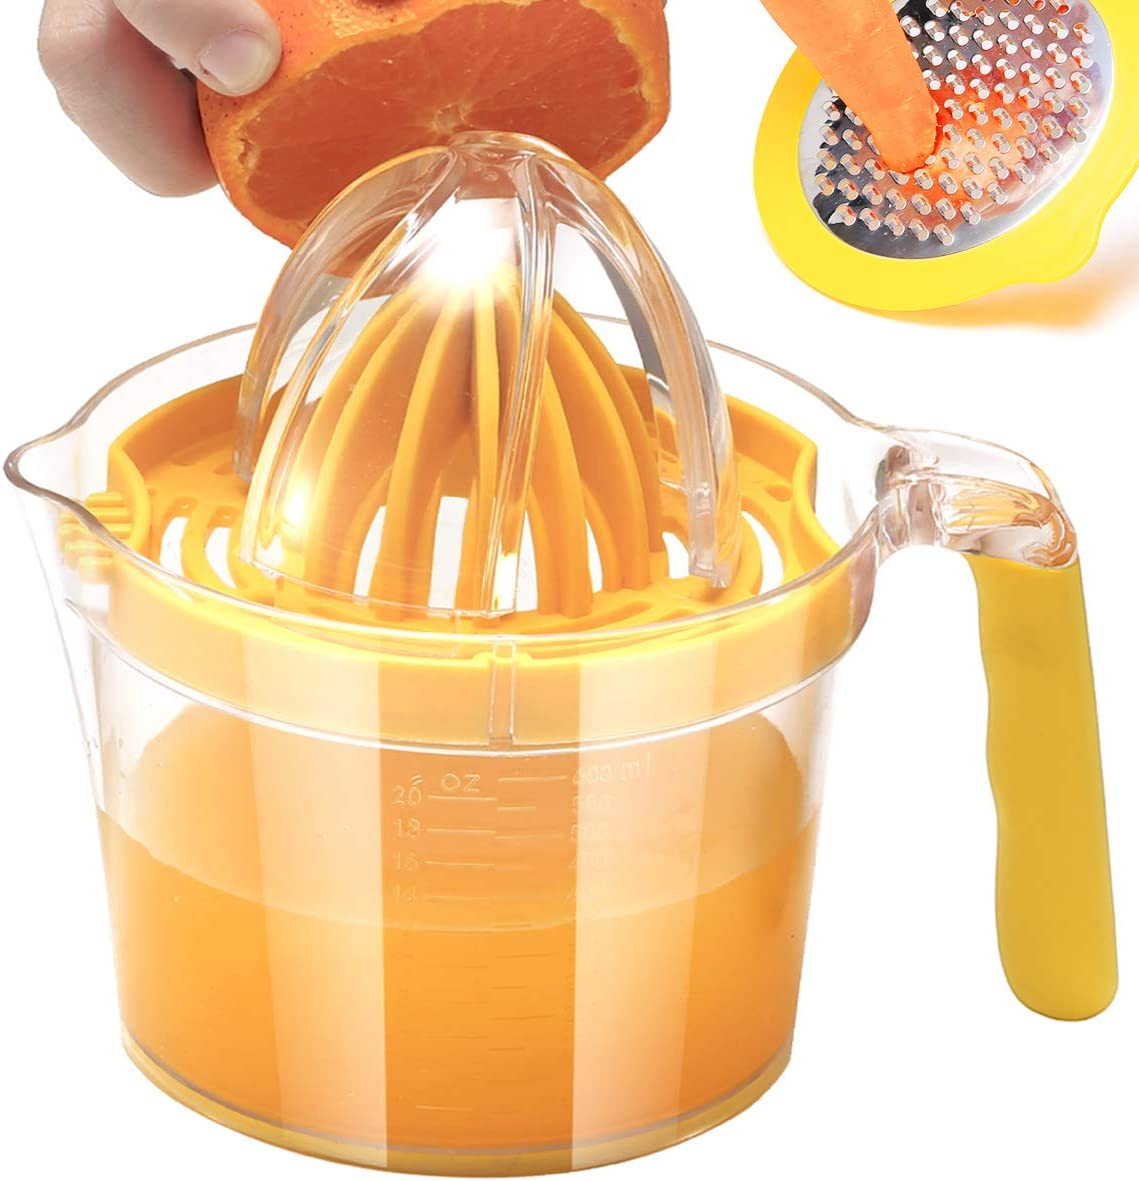 RIVTUN Lemon Orange Manual Juicer Hand Squeezer with Built-in Measuring Cup and Grater Anti-Slip Reamer Extraction Egg Separator,Non-Slip Silicone Handle 20OZ